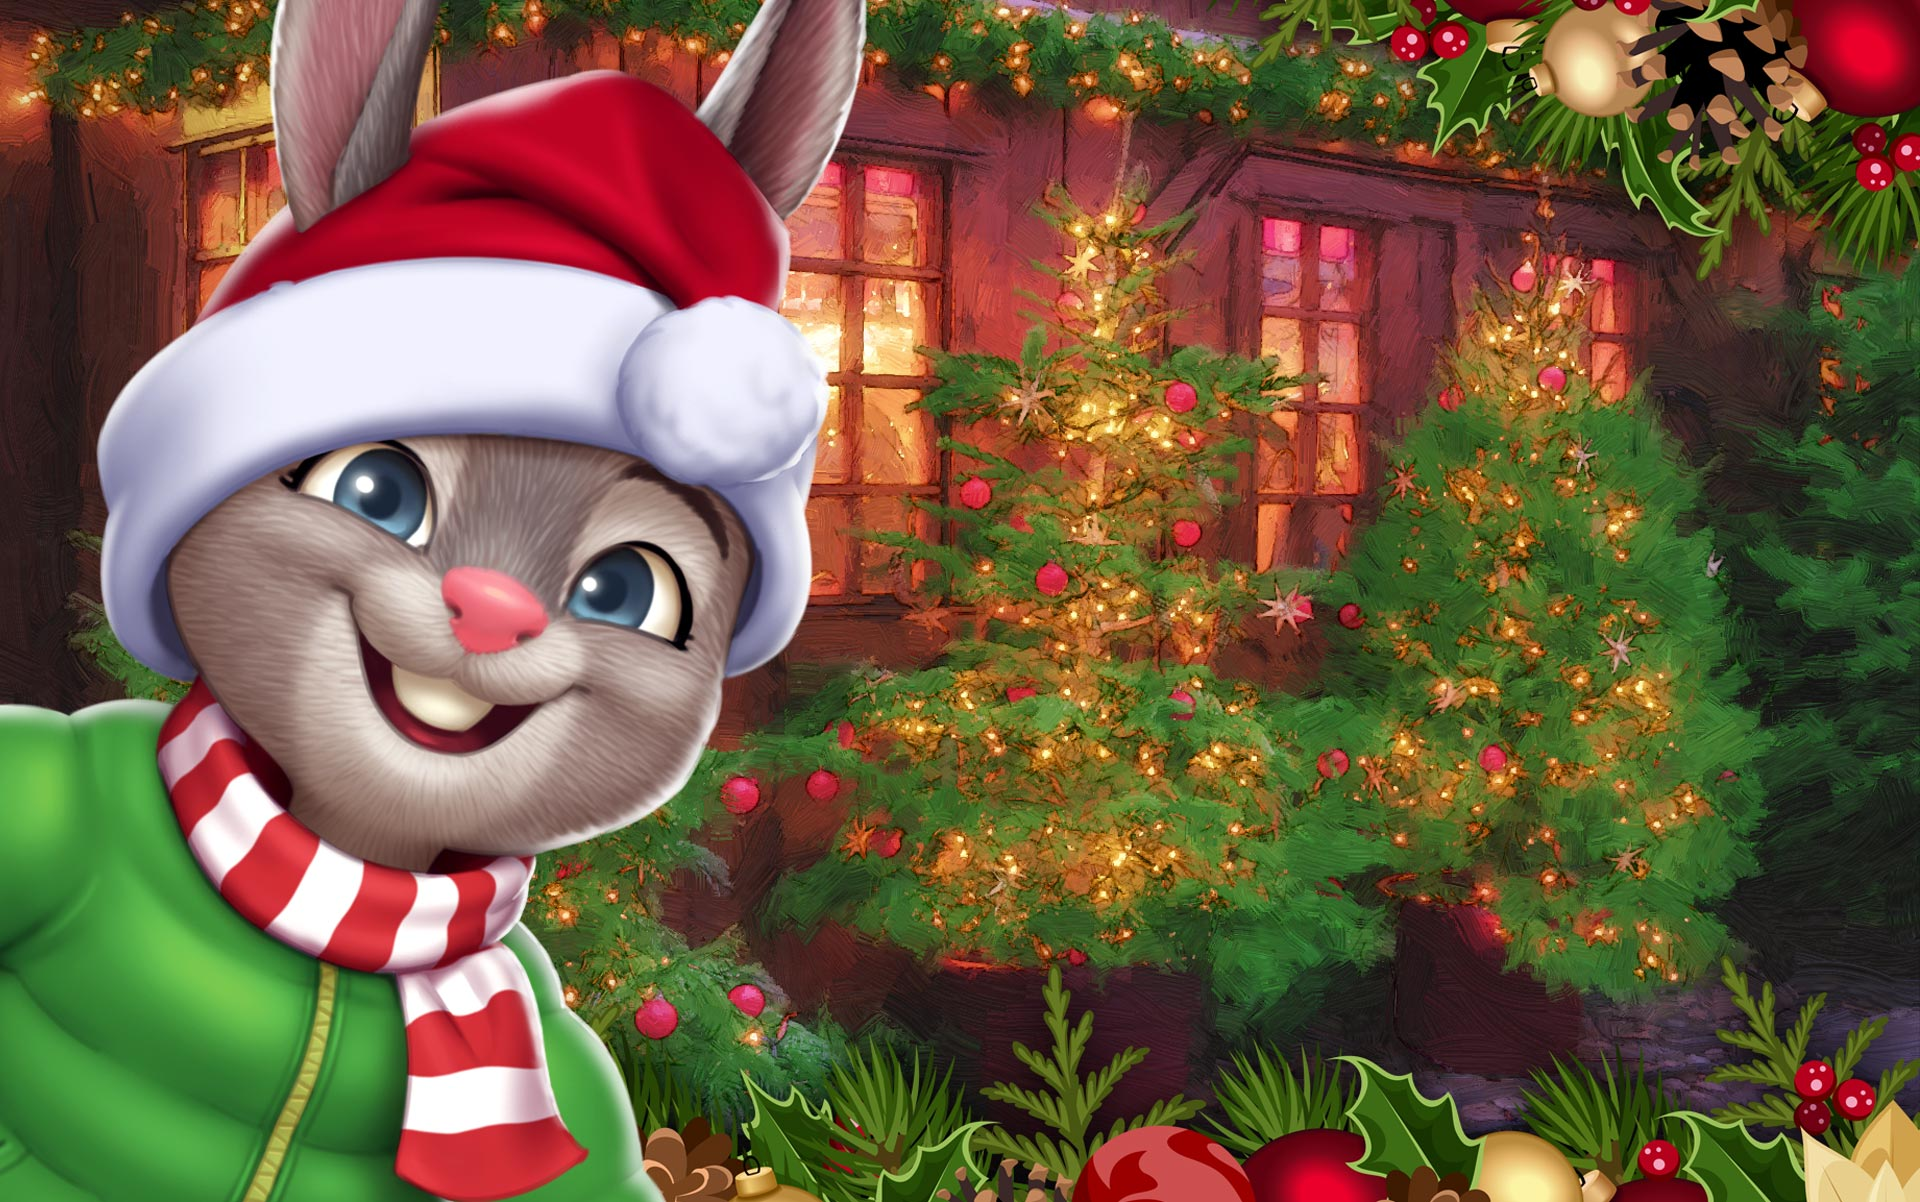 GameHouse Christmas Feature 2018 - Shopping Clutter 2 - Christmas Square